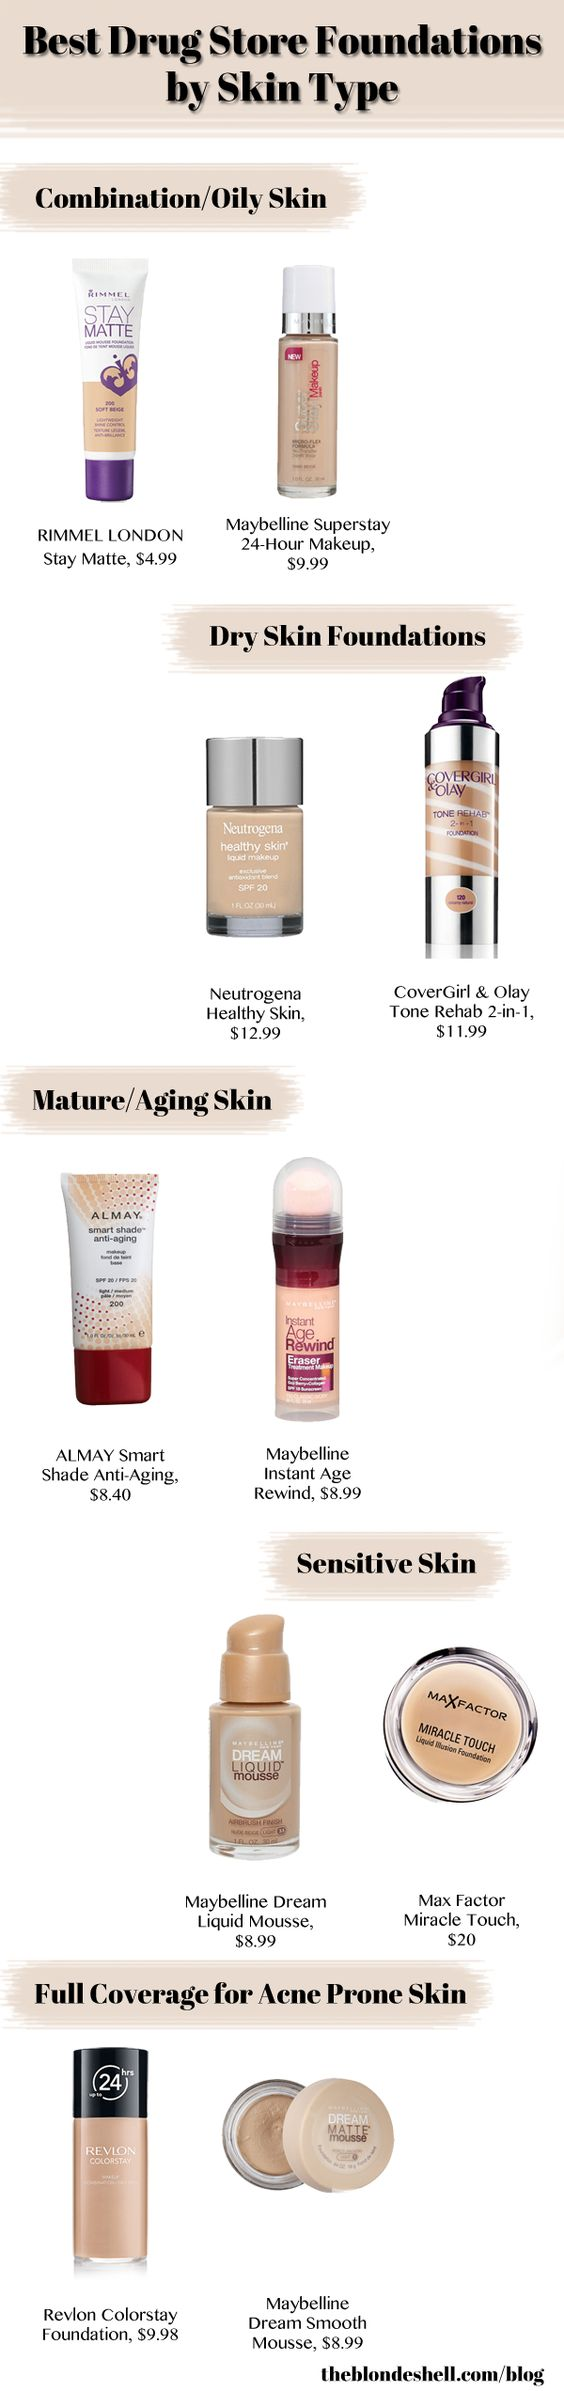 Makeup for acne prone skin